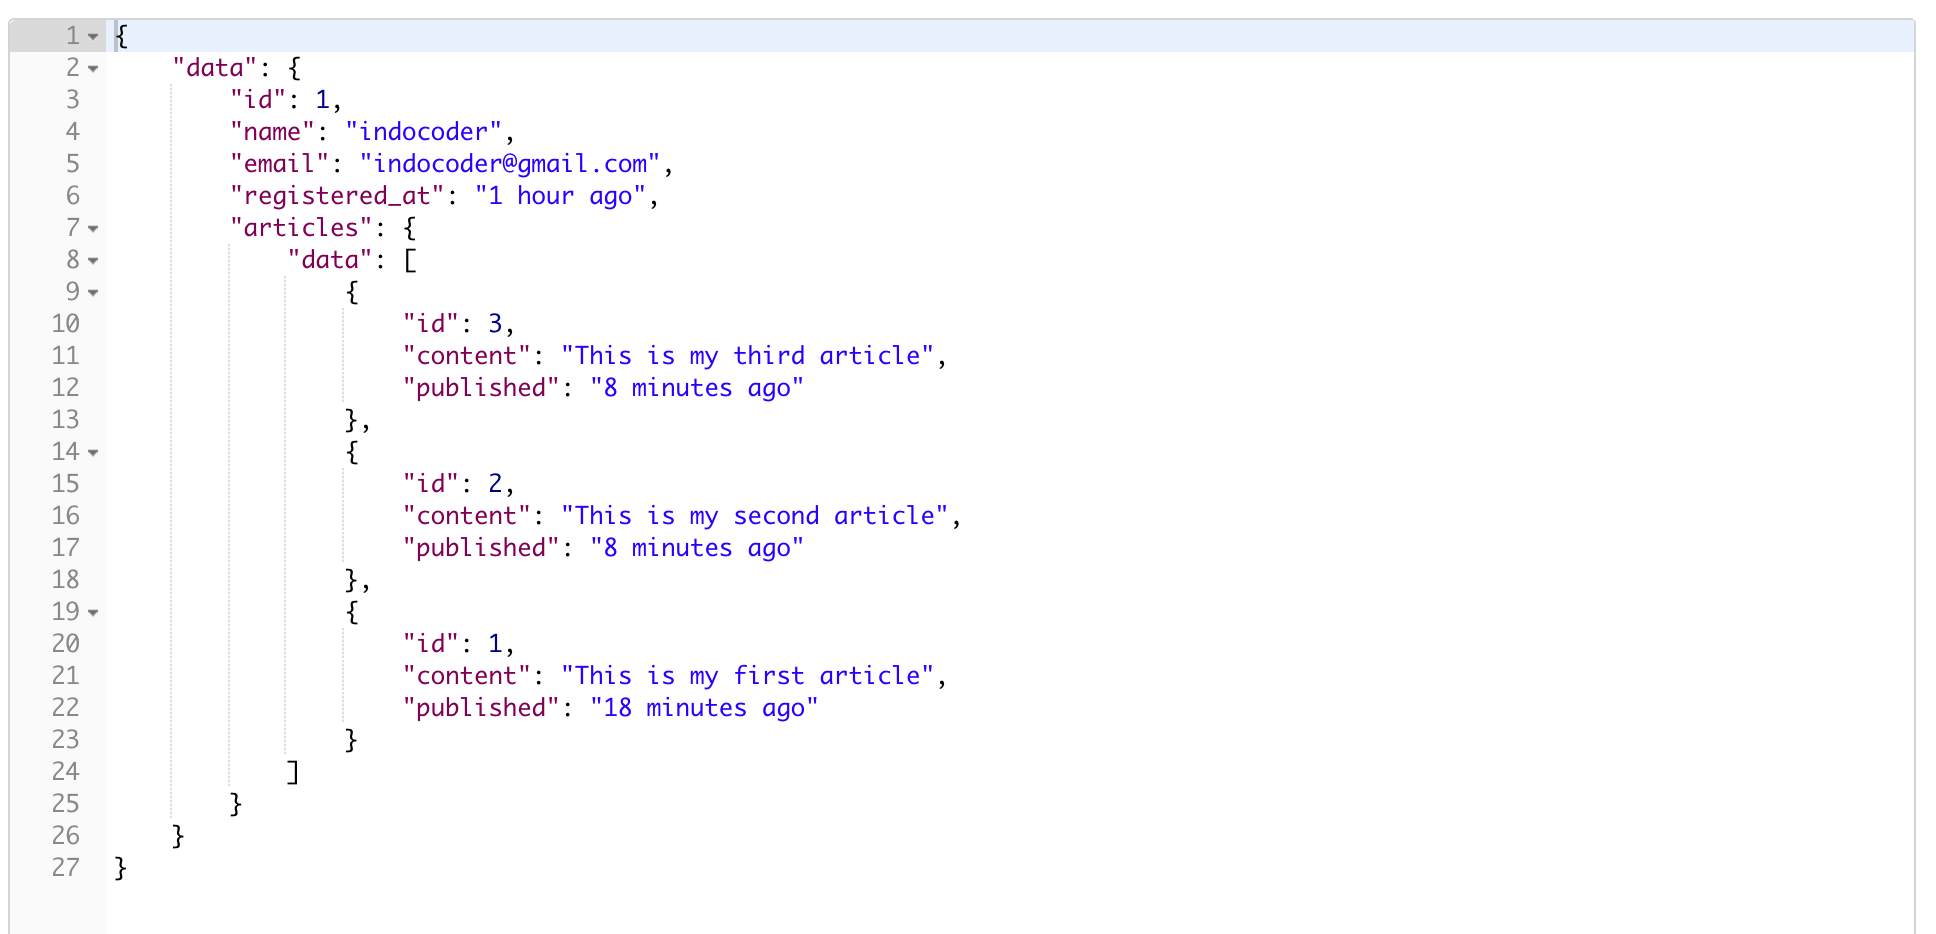 Laravel 5.7 API Include Article Order By ID Desc